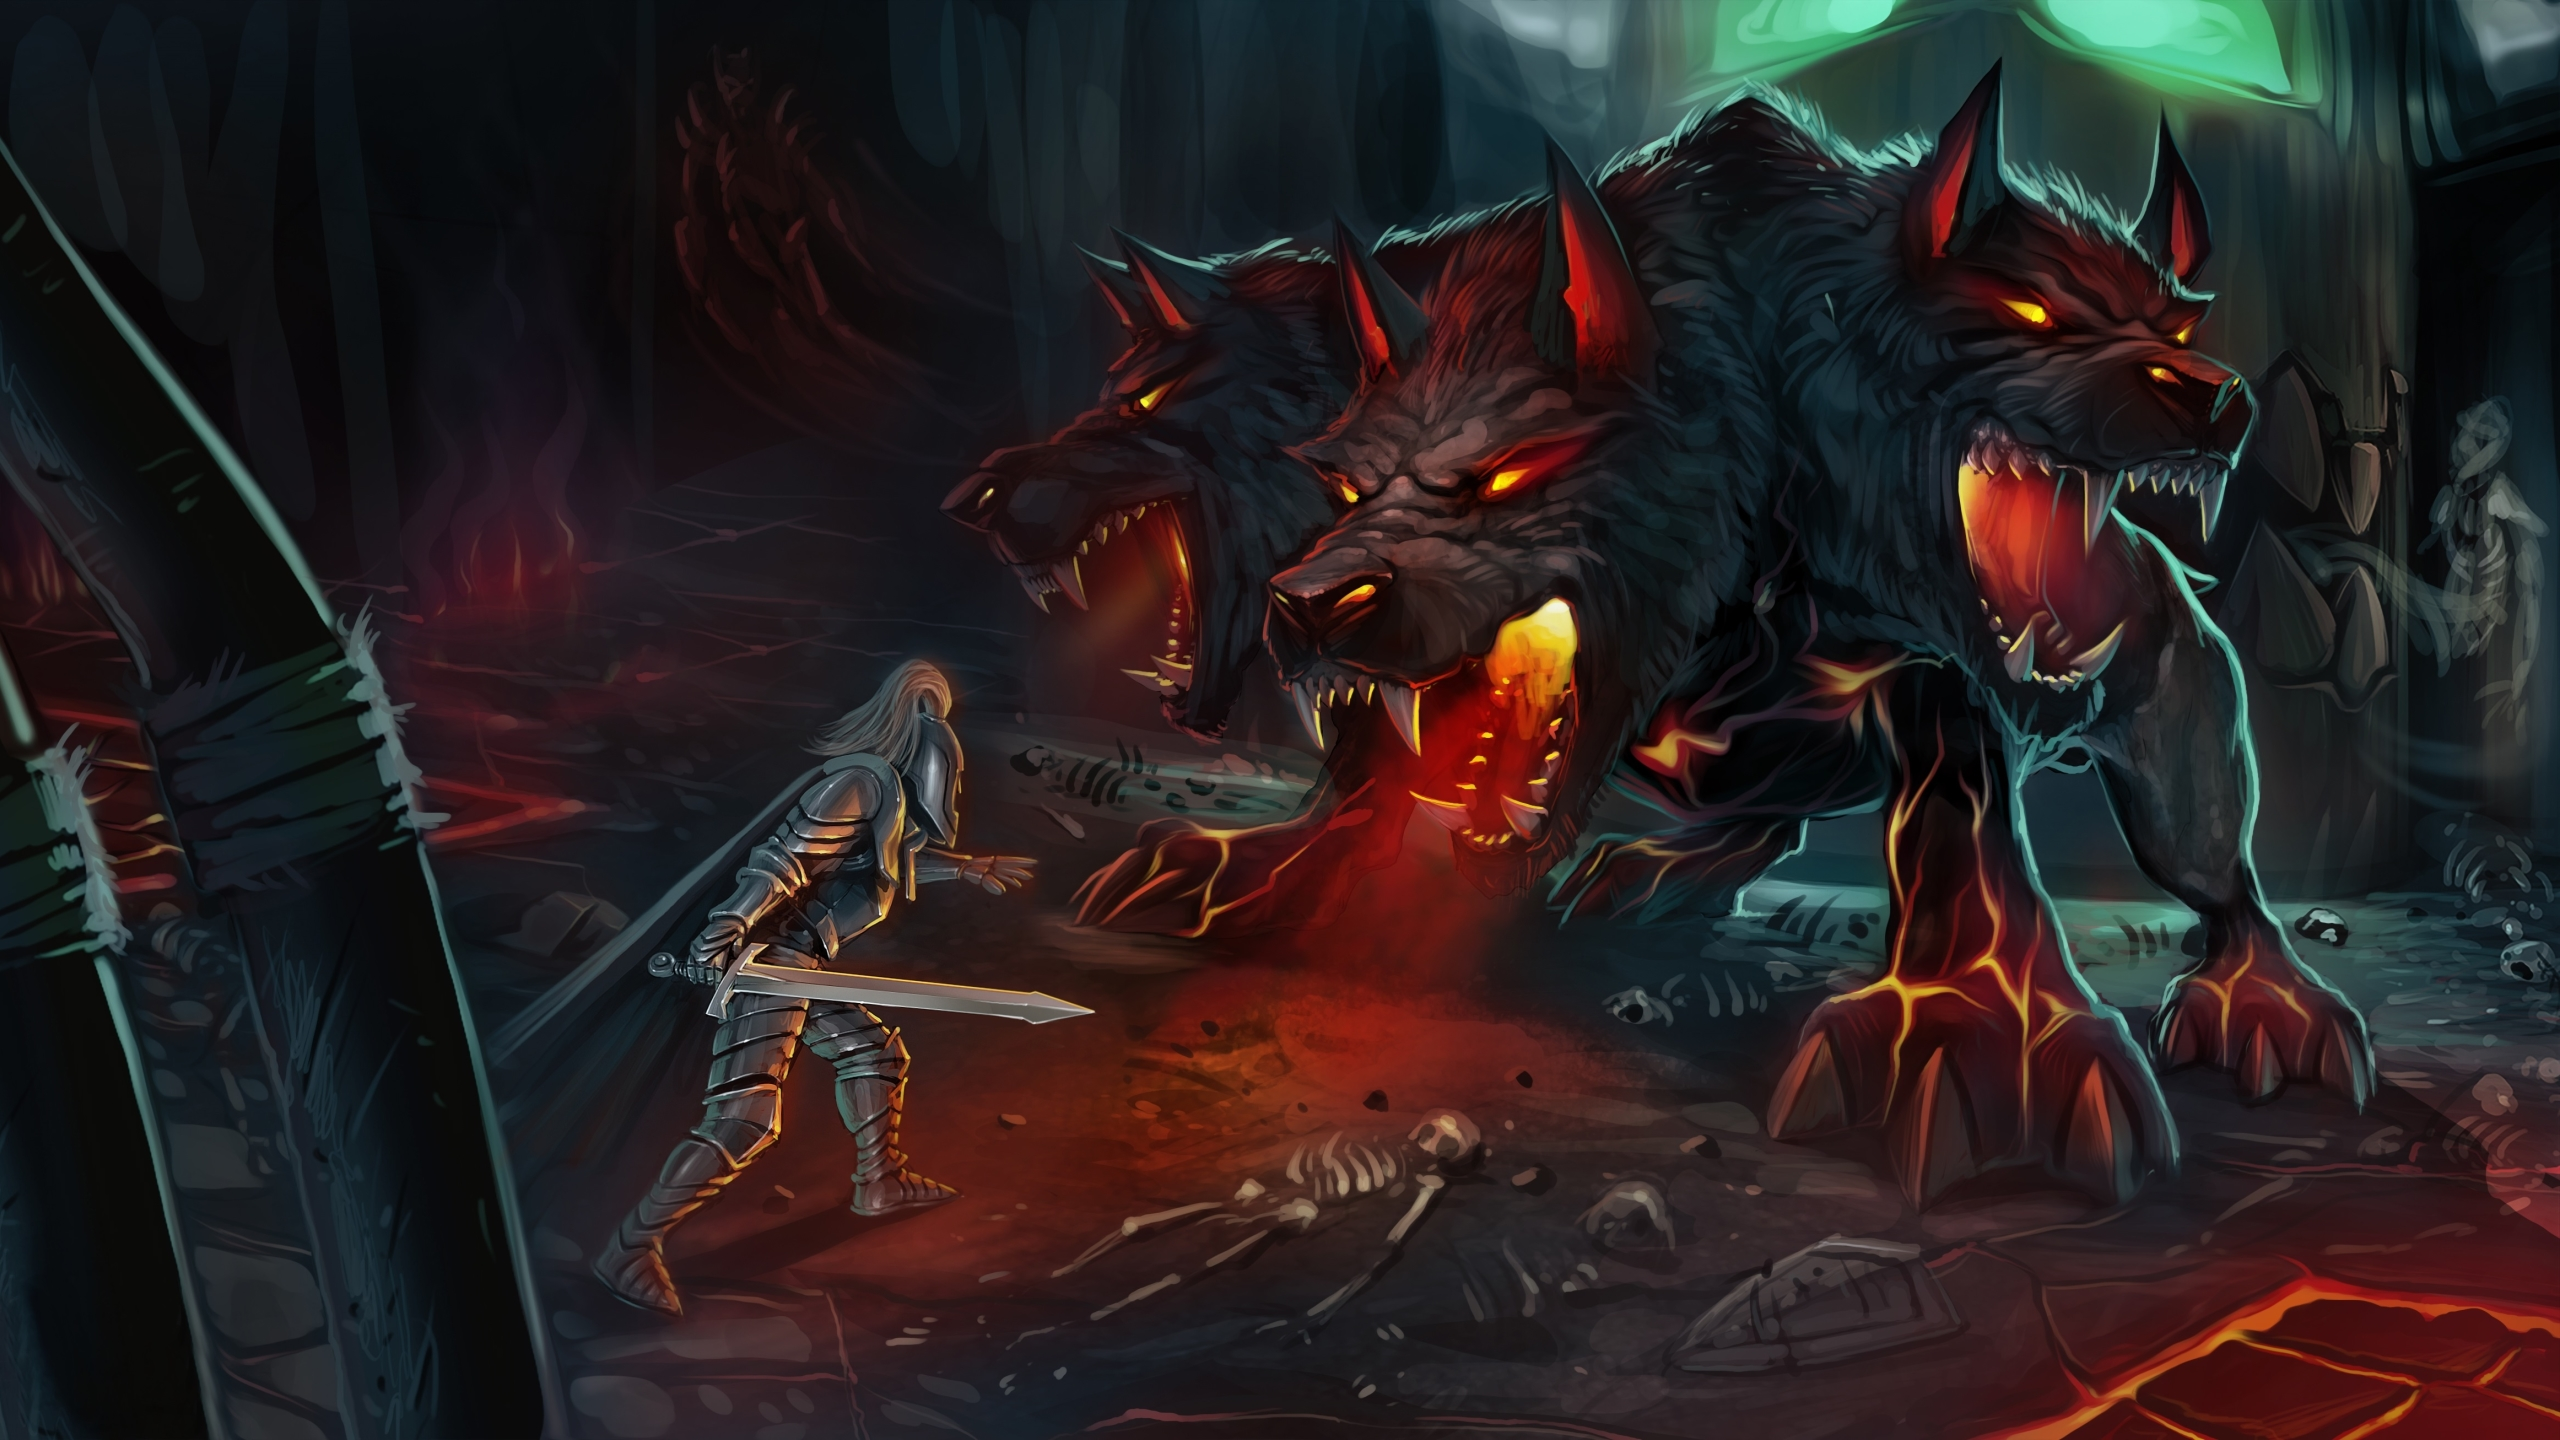 2560x1440 Runescape 5k 1440p Resolution Wallpaper Hd Games 4k Wallpapers Images Photos And Background